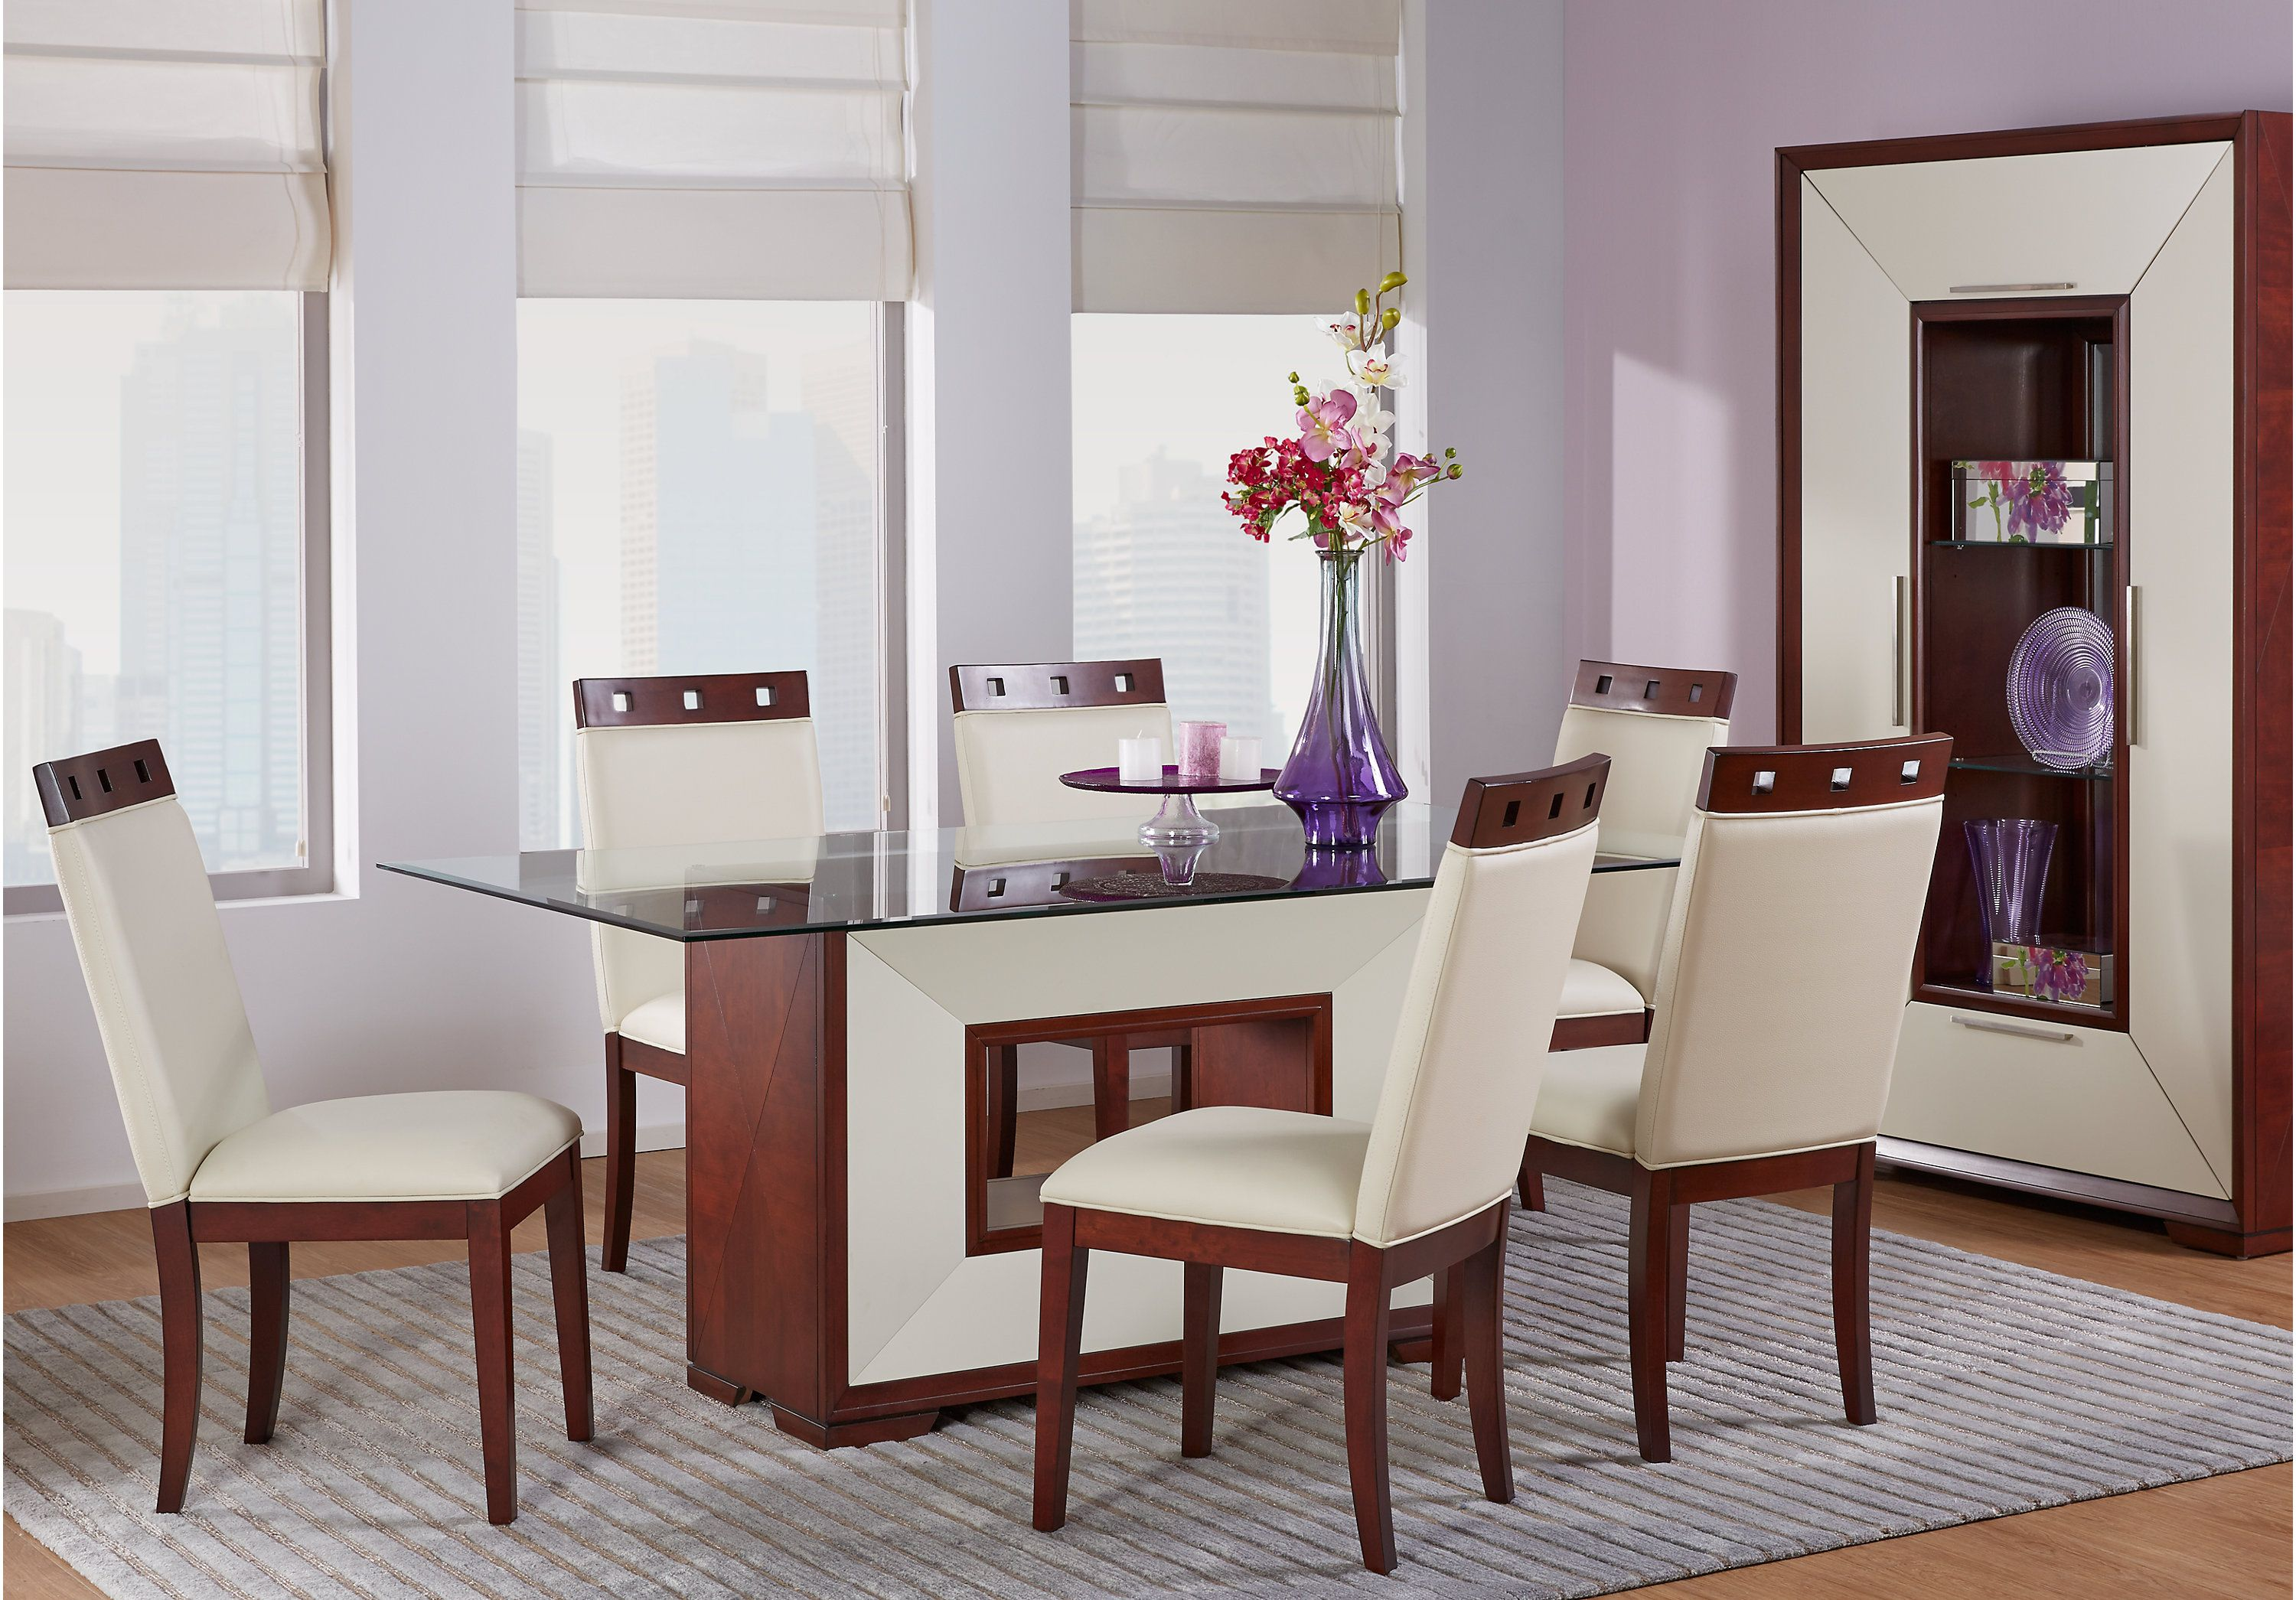 Charming Picture Of Sofia Vergara Savona Ivory 5 Pc Rectangle Dining Room With Glass  Top From Dining Room Sets Furniture Design Inspirations